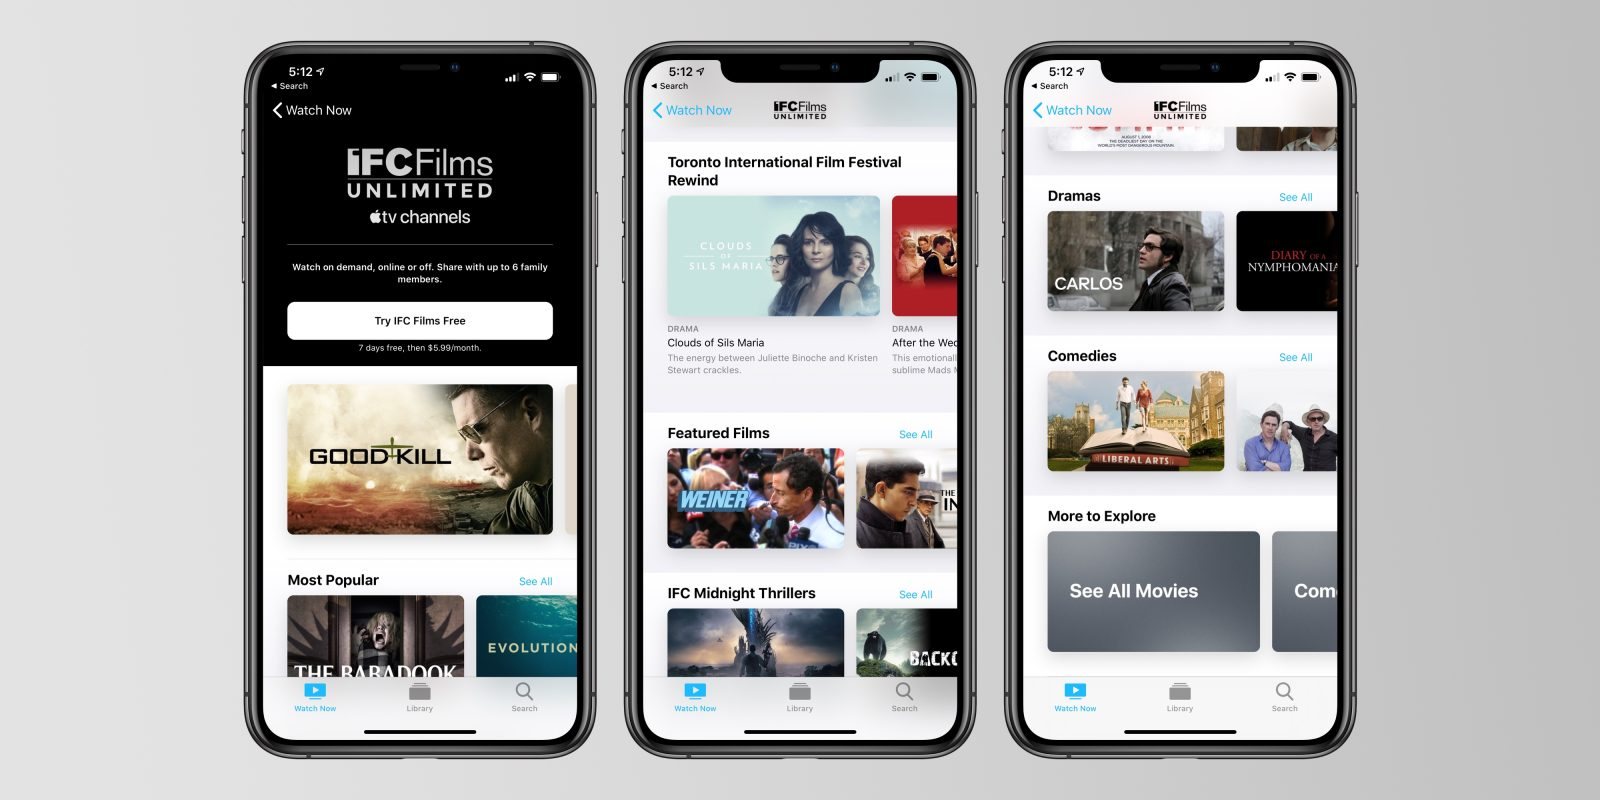 IFC Films Unlimited now available through Apple TV Channels for $6 per month